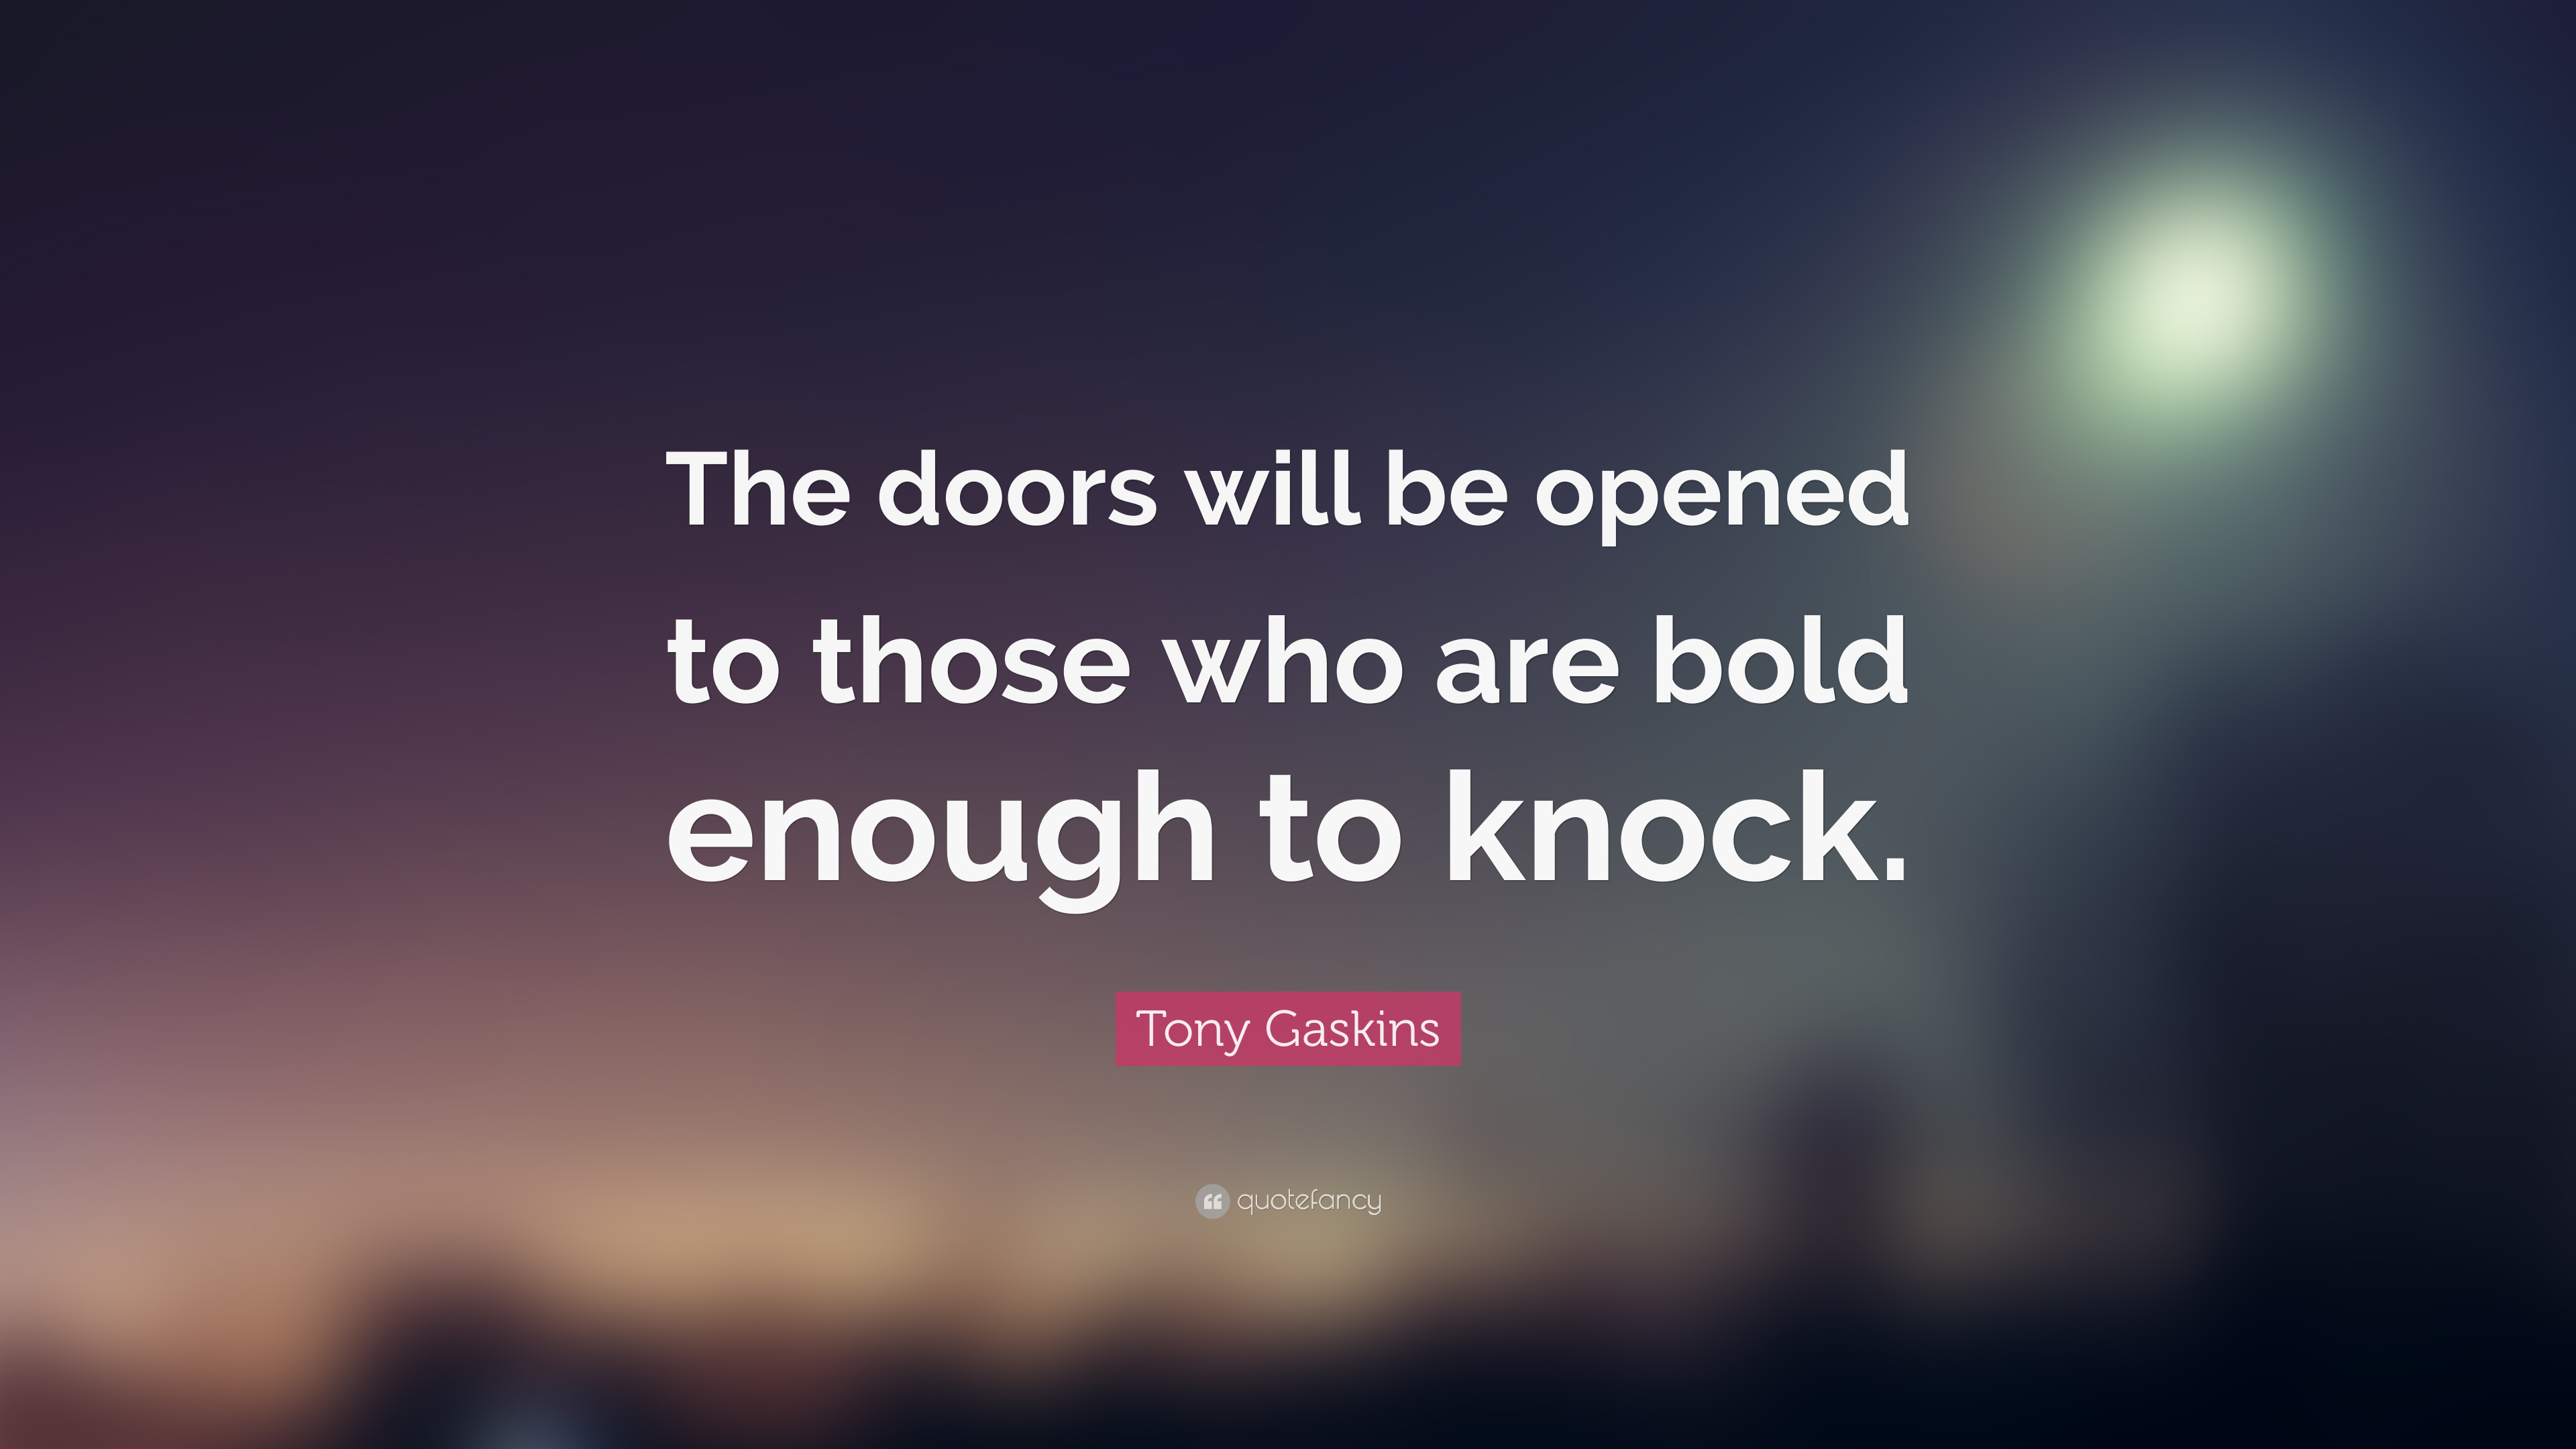 Tony Gaskins Quote: The doors will be opened to those who